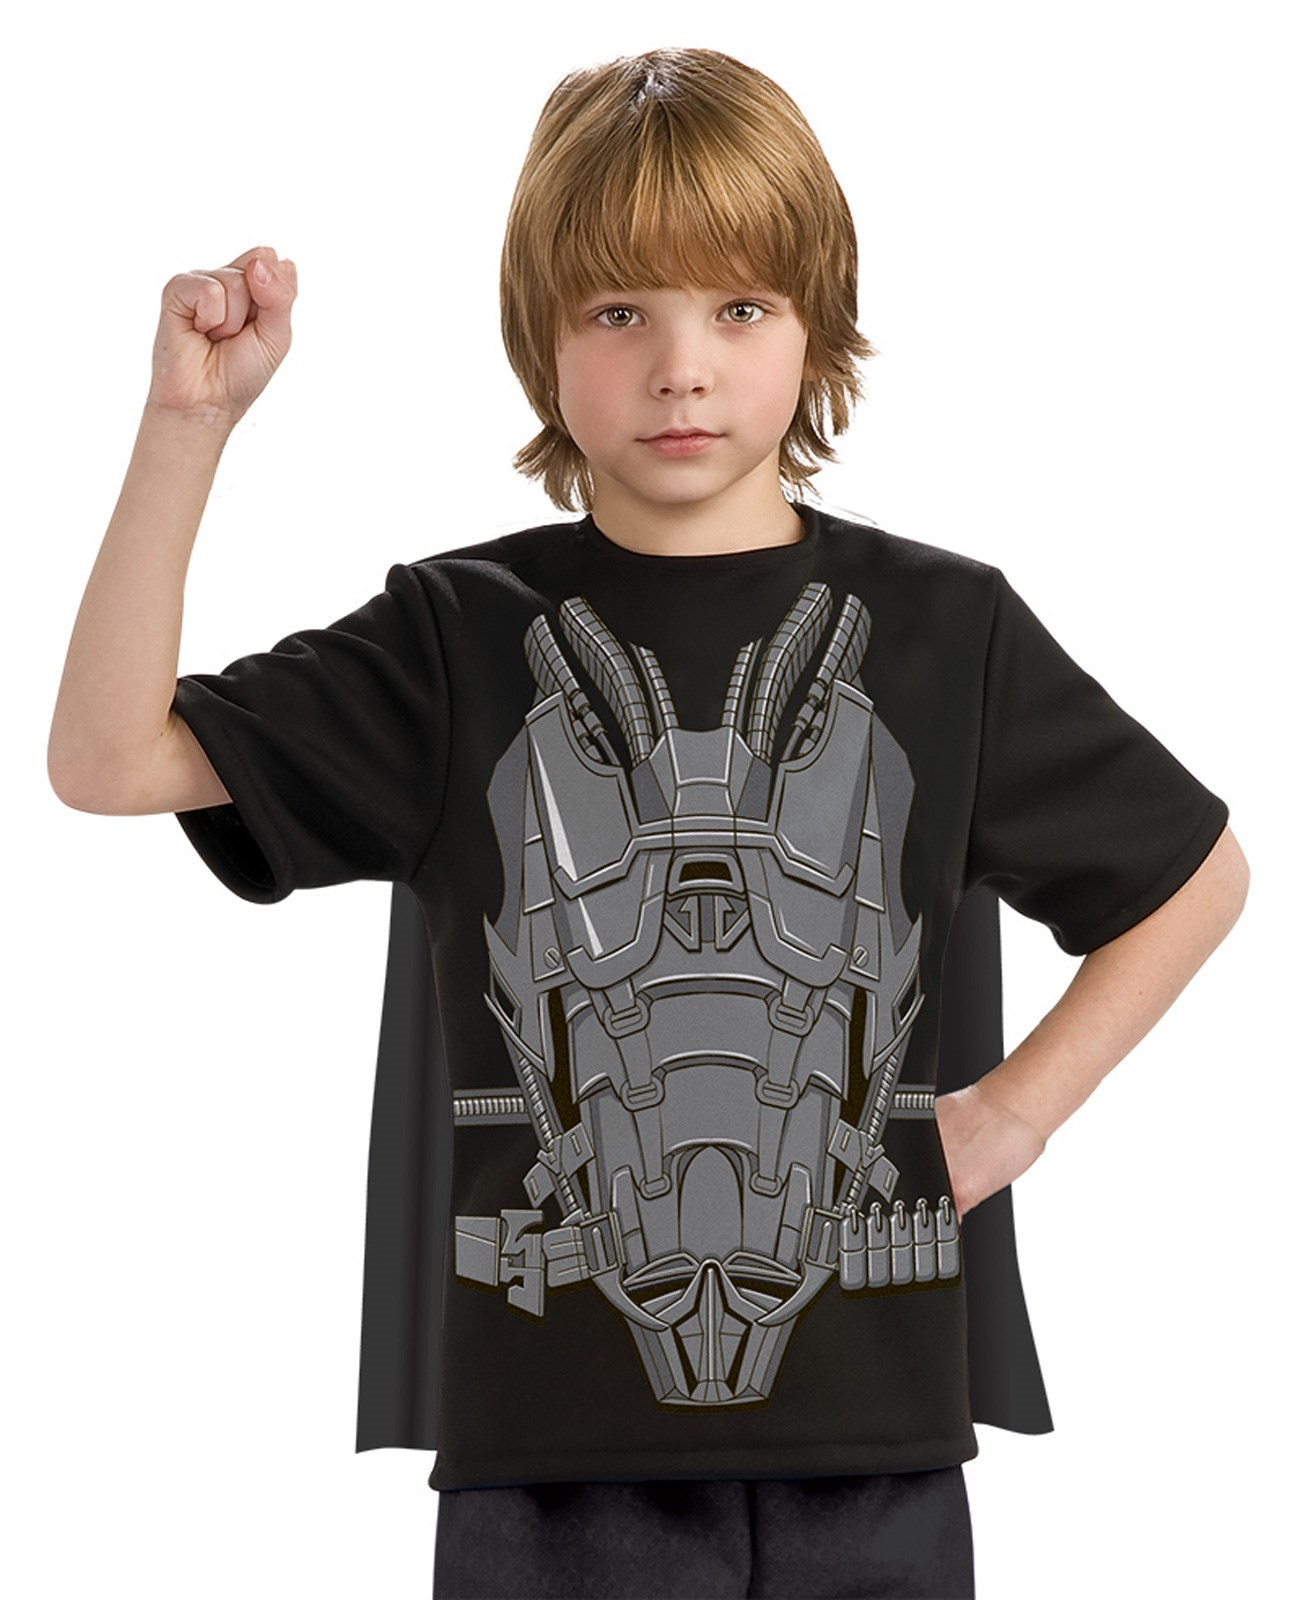 Superman Man of Steel General Zod Child Costume Top and Cape Small (4-6)